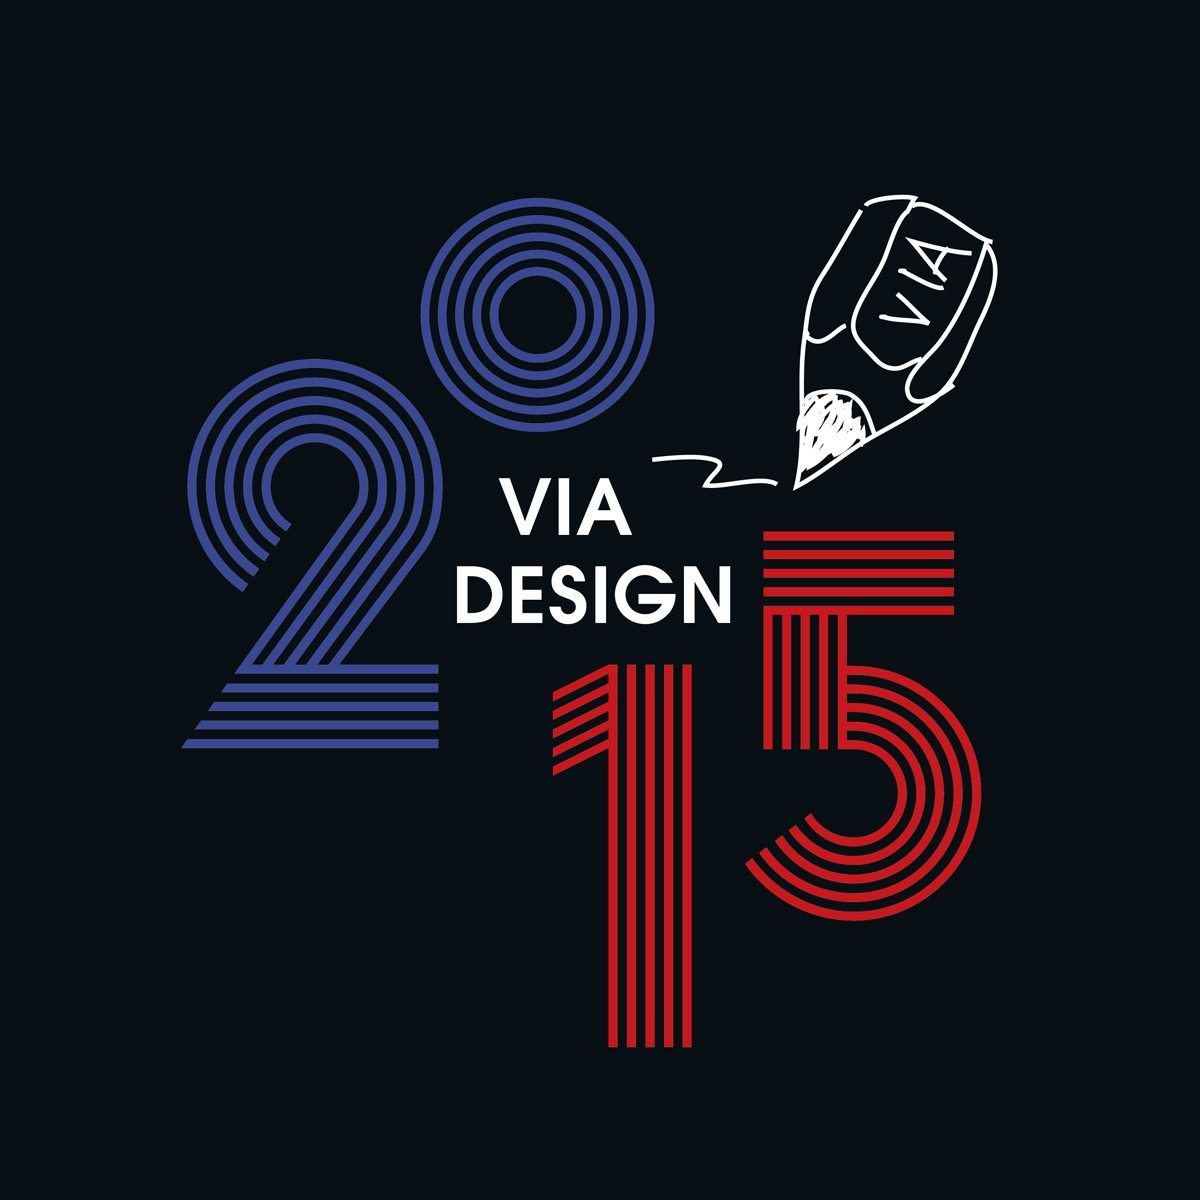 France Design 2015 Via Design Ich&Kar